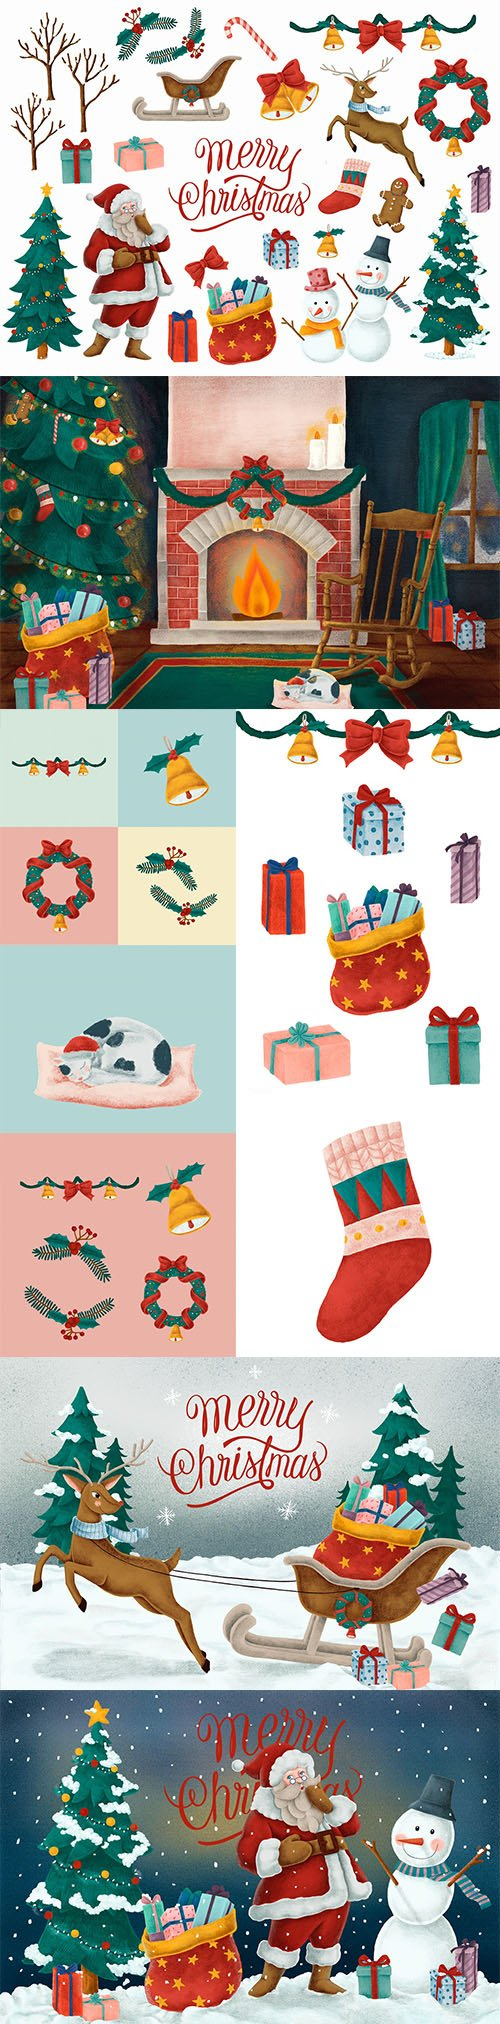 Merry Christmas Hand Drawn Card and Illustrations Collection